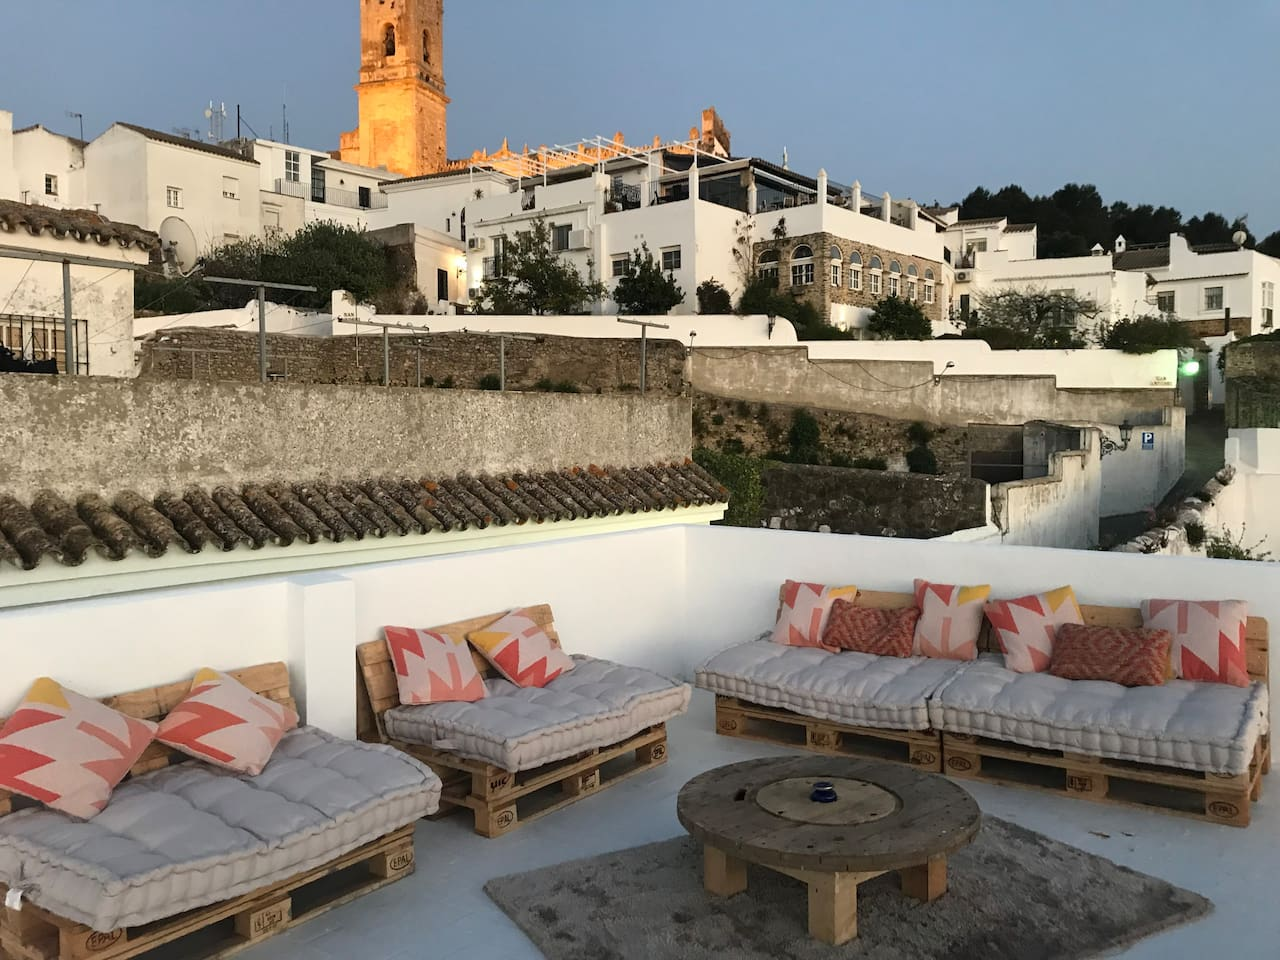 Terraza desde donde se vee el Mar y Africa Roof terrace from wich you can see sunset and Africa